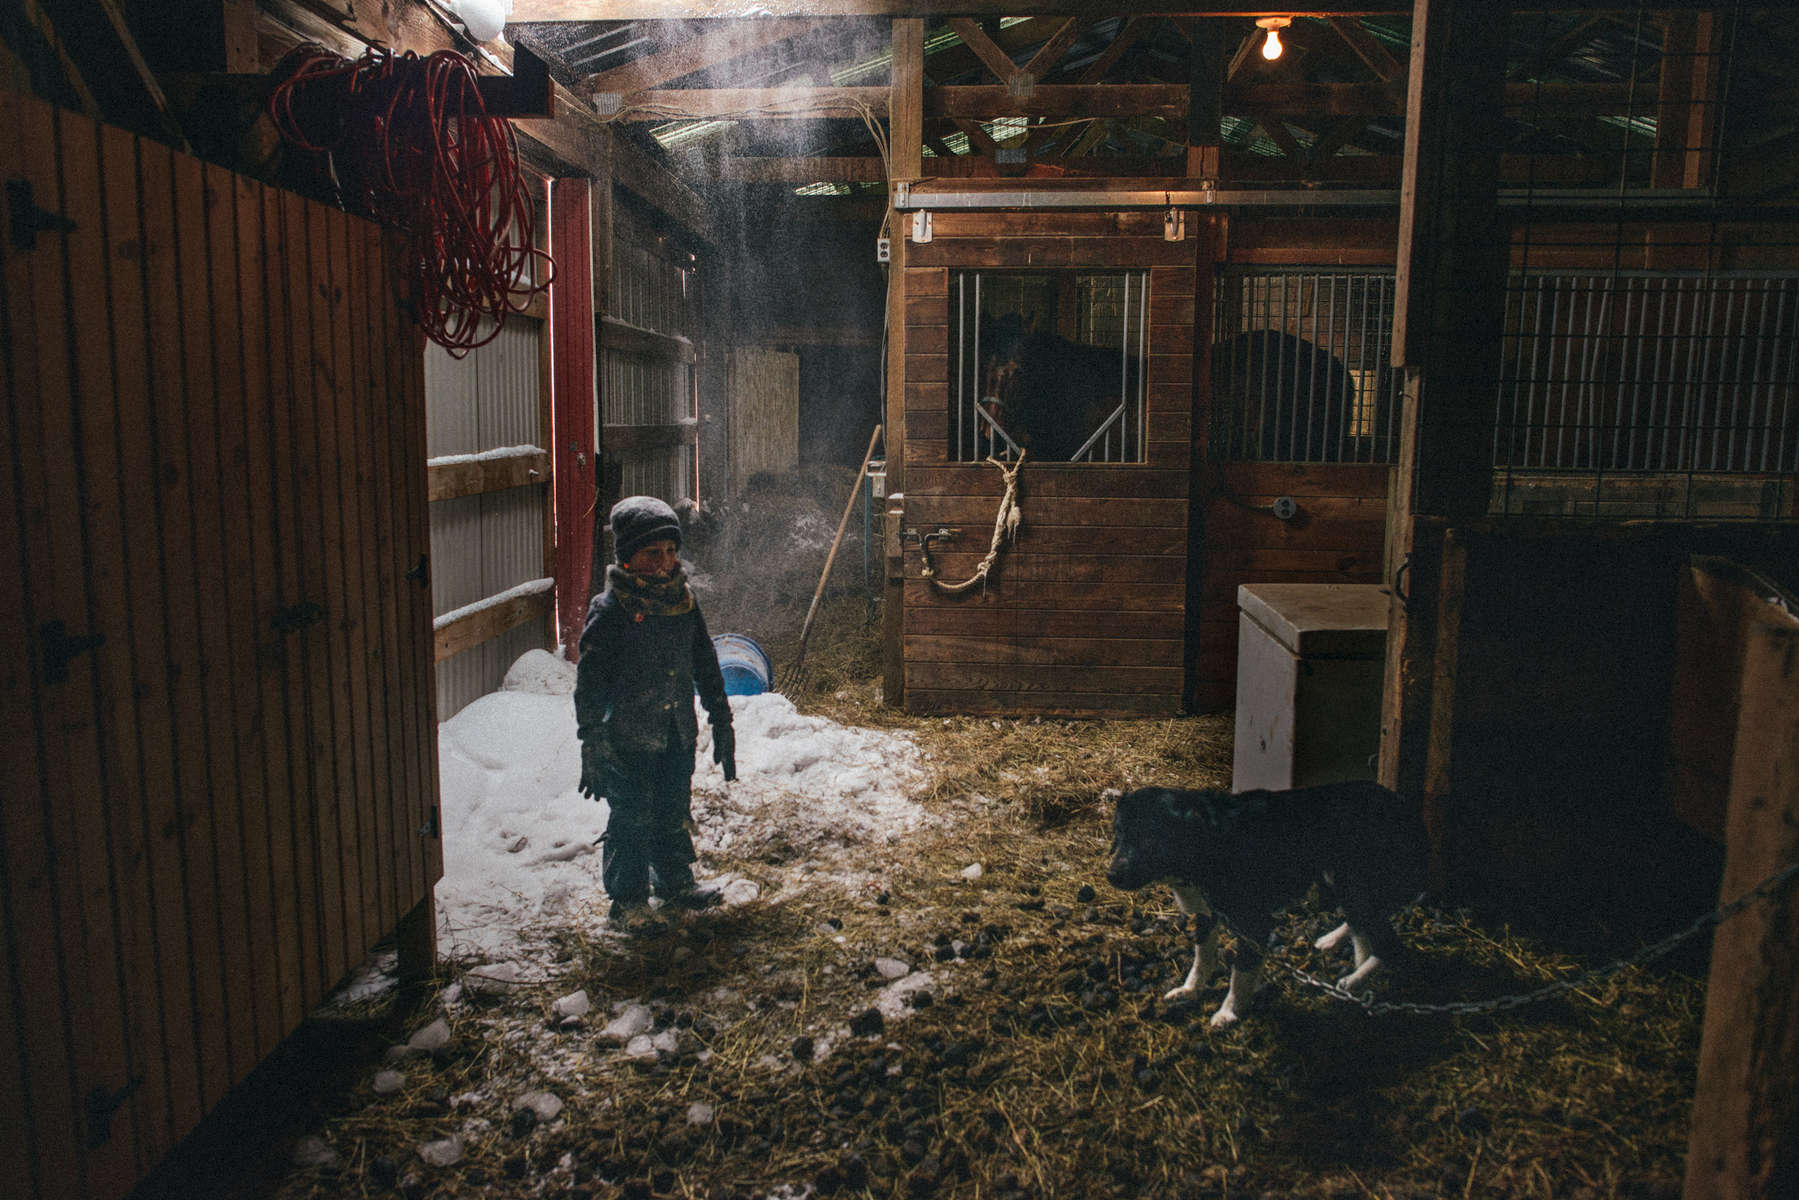 This project is an ongoing exploration of the beauty, challenges and interconnectivities of life on small, family-run farms in upstate New York.